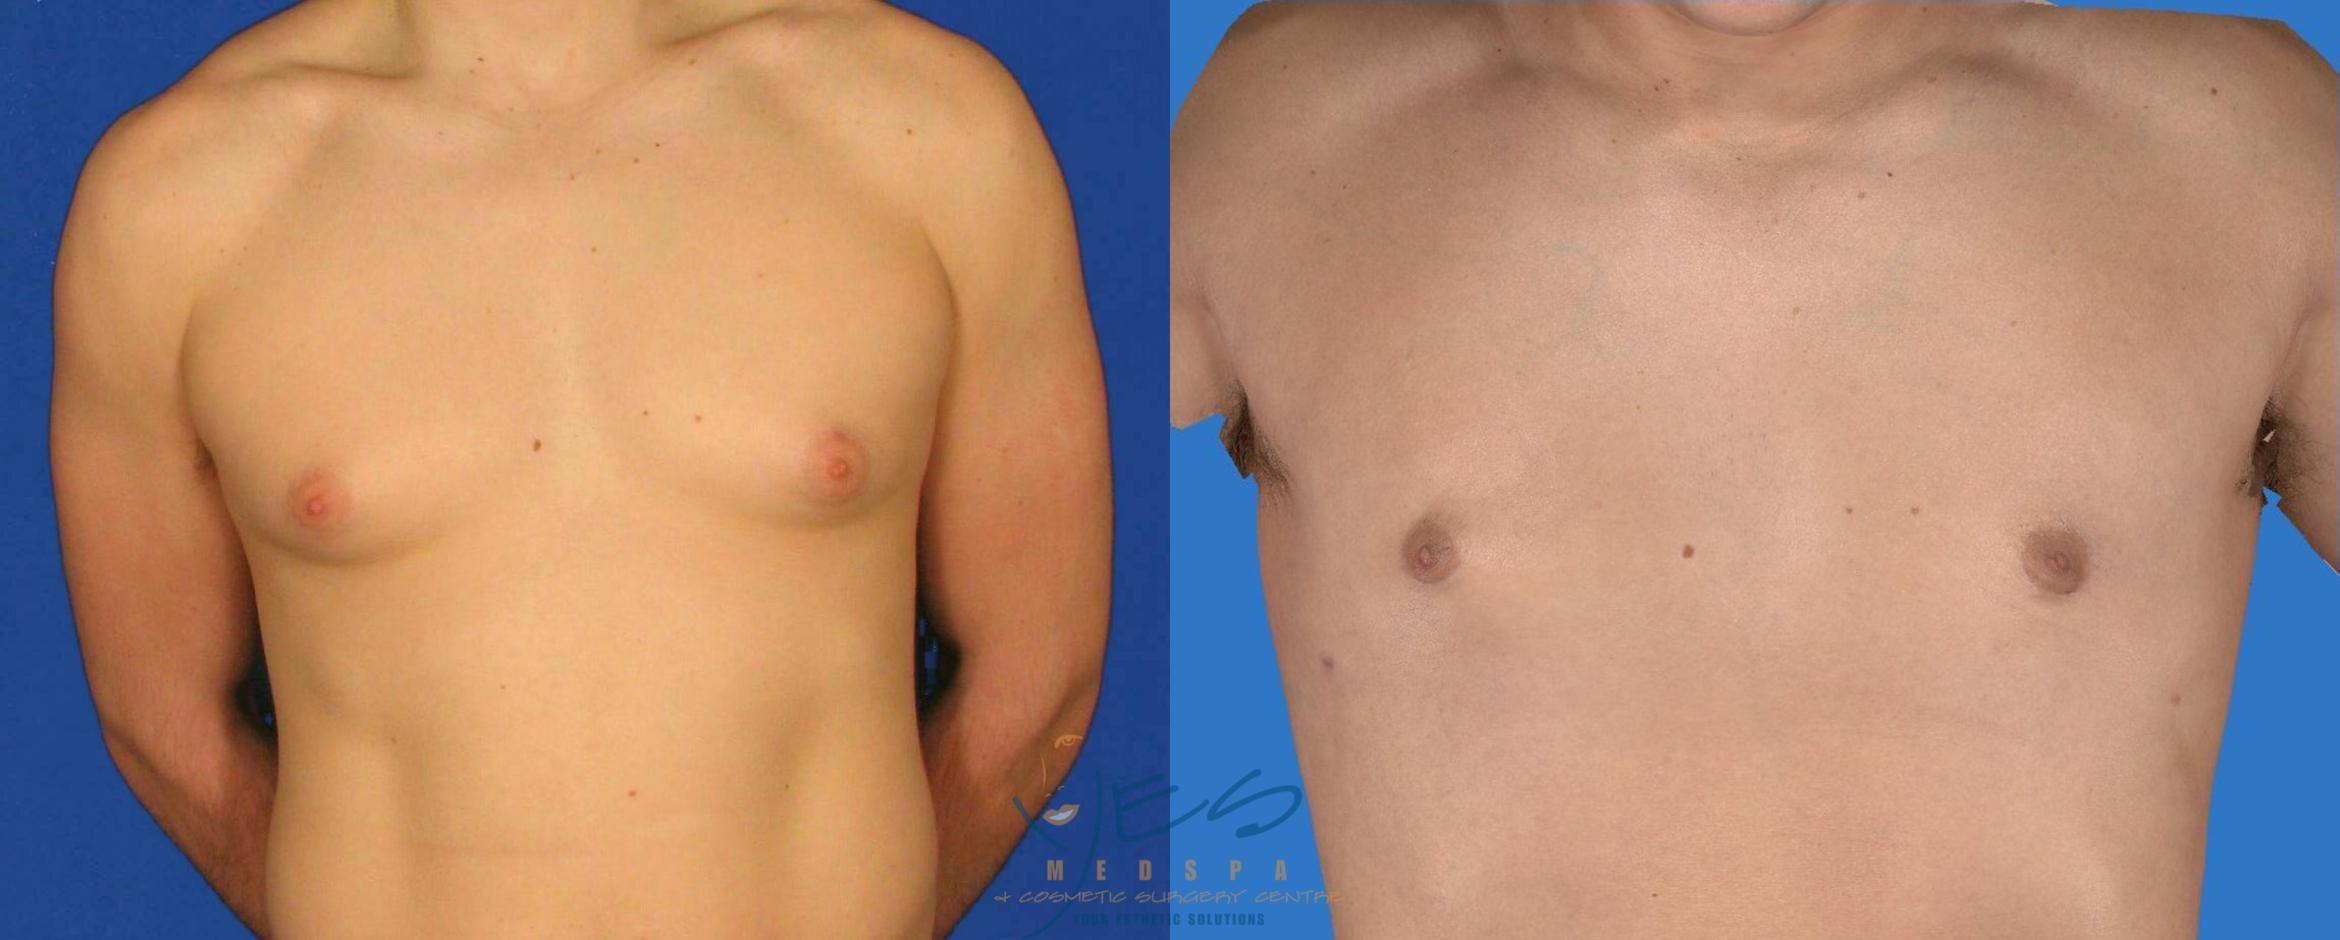 Male Breast Reduction Case 85 Before & After View #1 | Vancouver, BC | YES Medspa & Cosmetic Surgery Centre